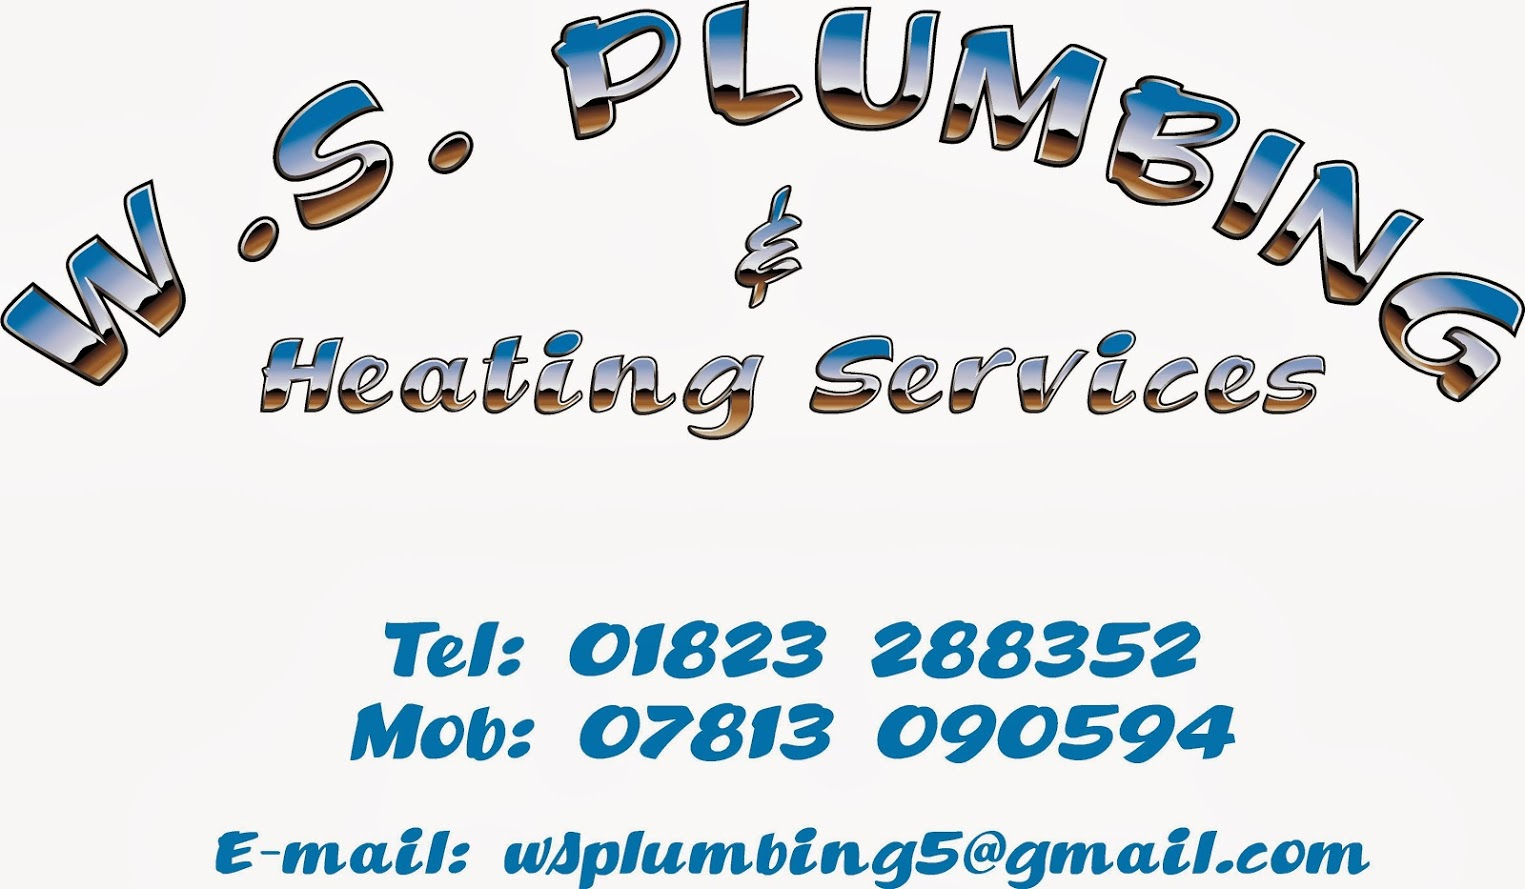 W.S. Plumbing and Heating Service